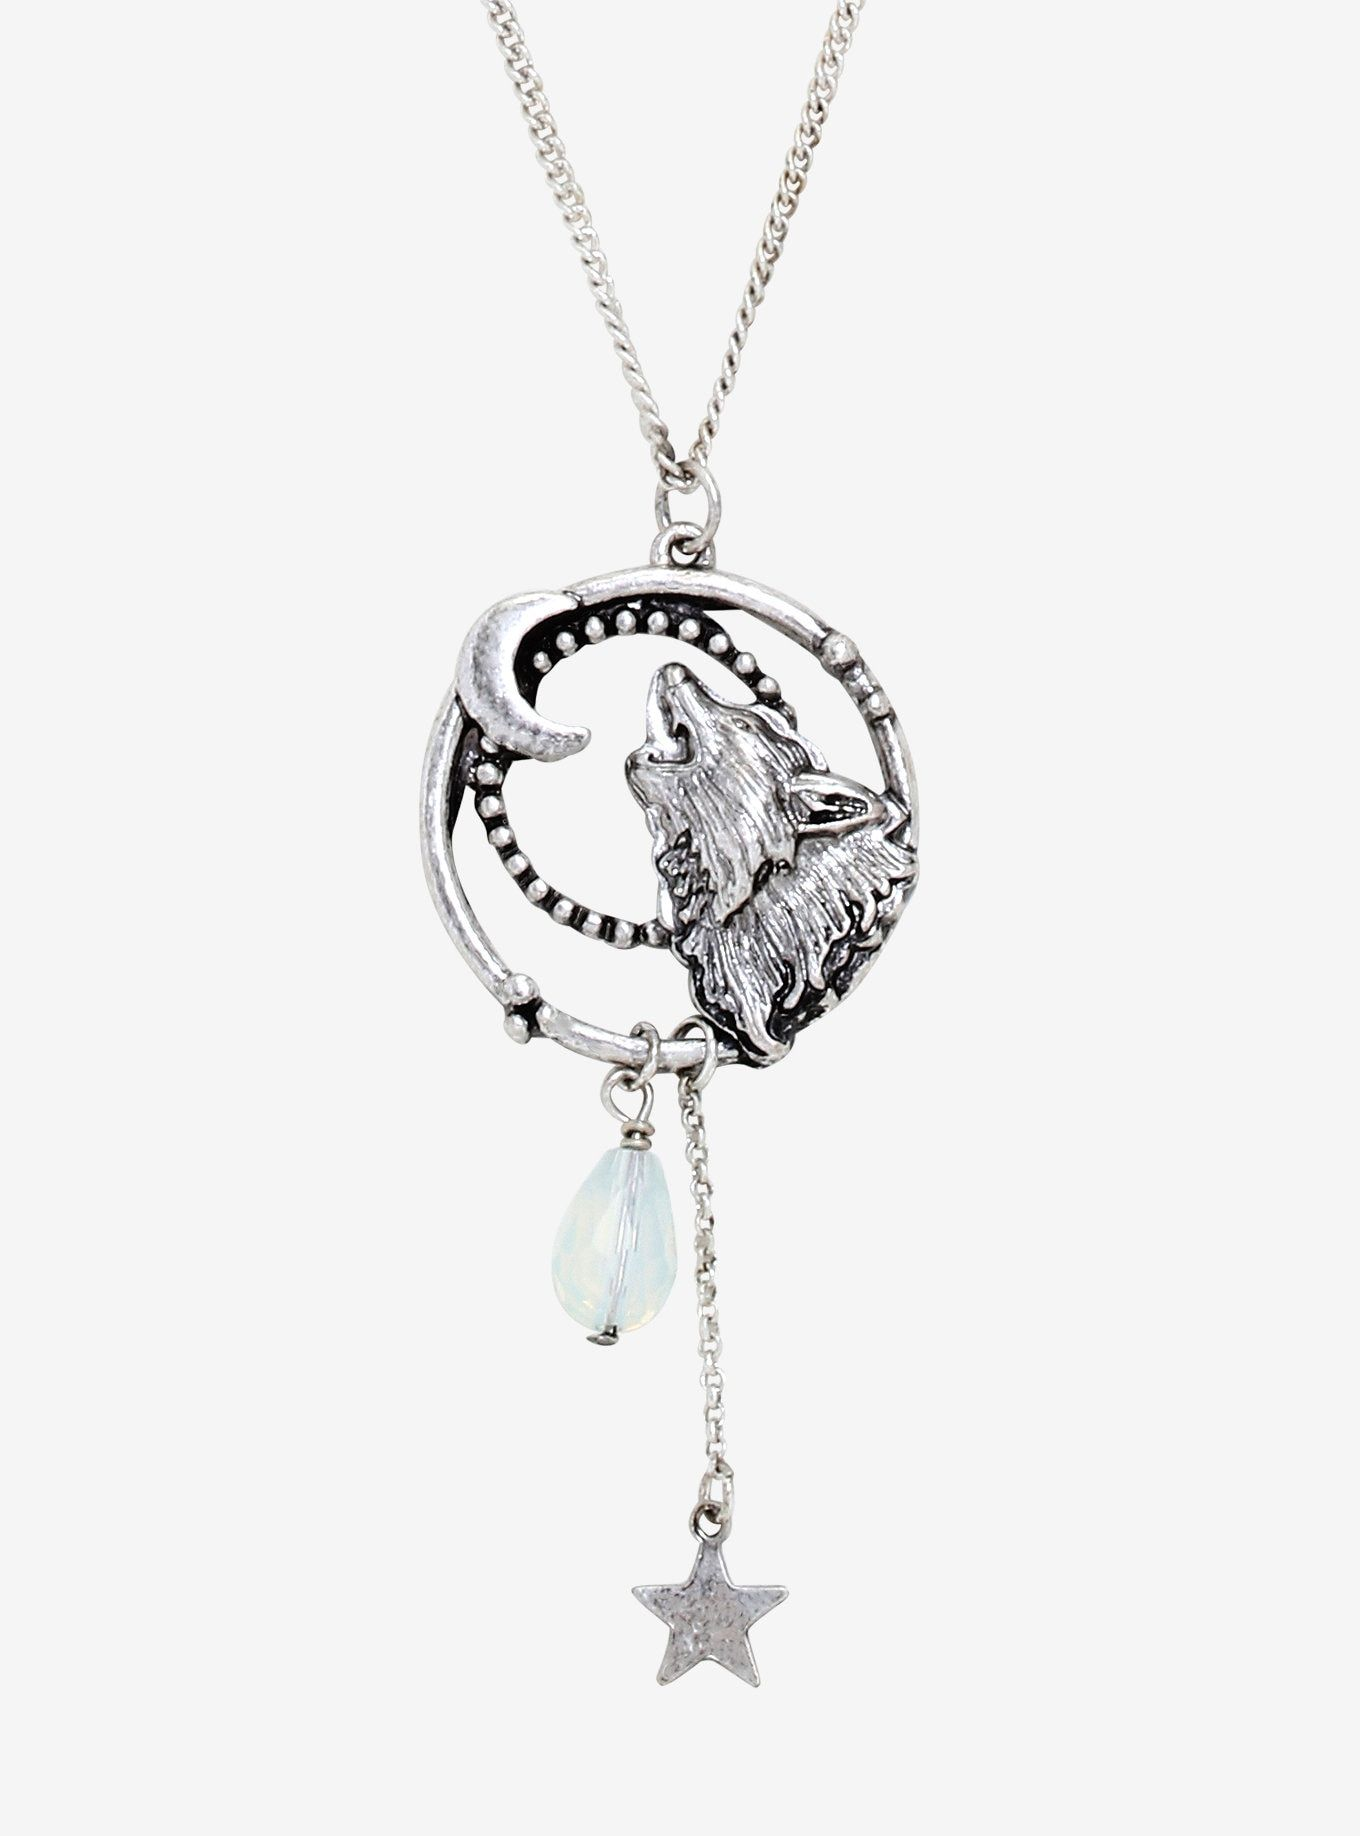 Silver Yin Yang Celtic Clover Pendant Womens Mens Black Leather Couple Necklace